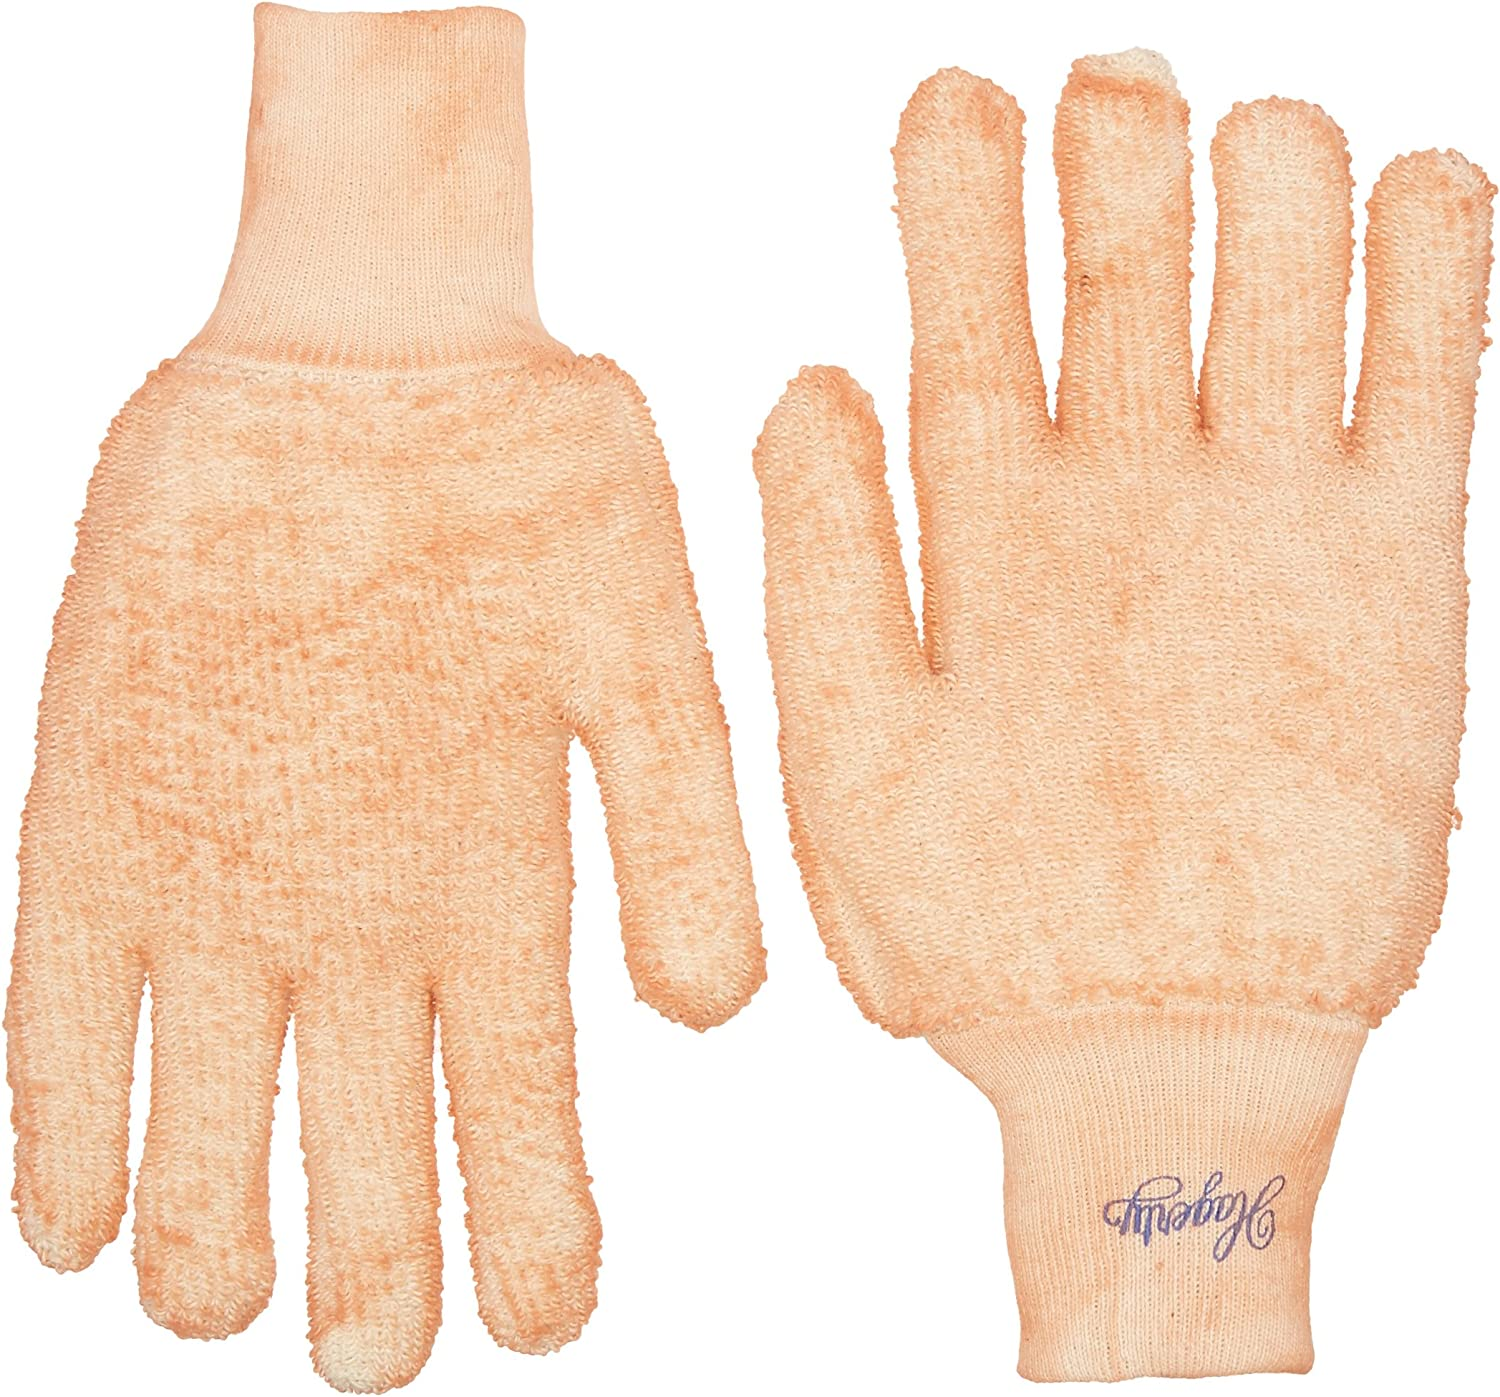 Hagerty W J & Son Hagerty 15010 Silversmiths' Gloves 1 Pair, Medium Food, 1, Blue